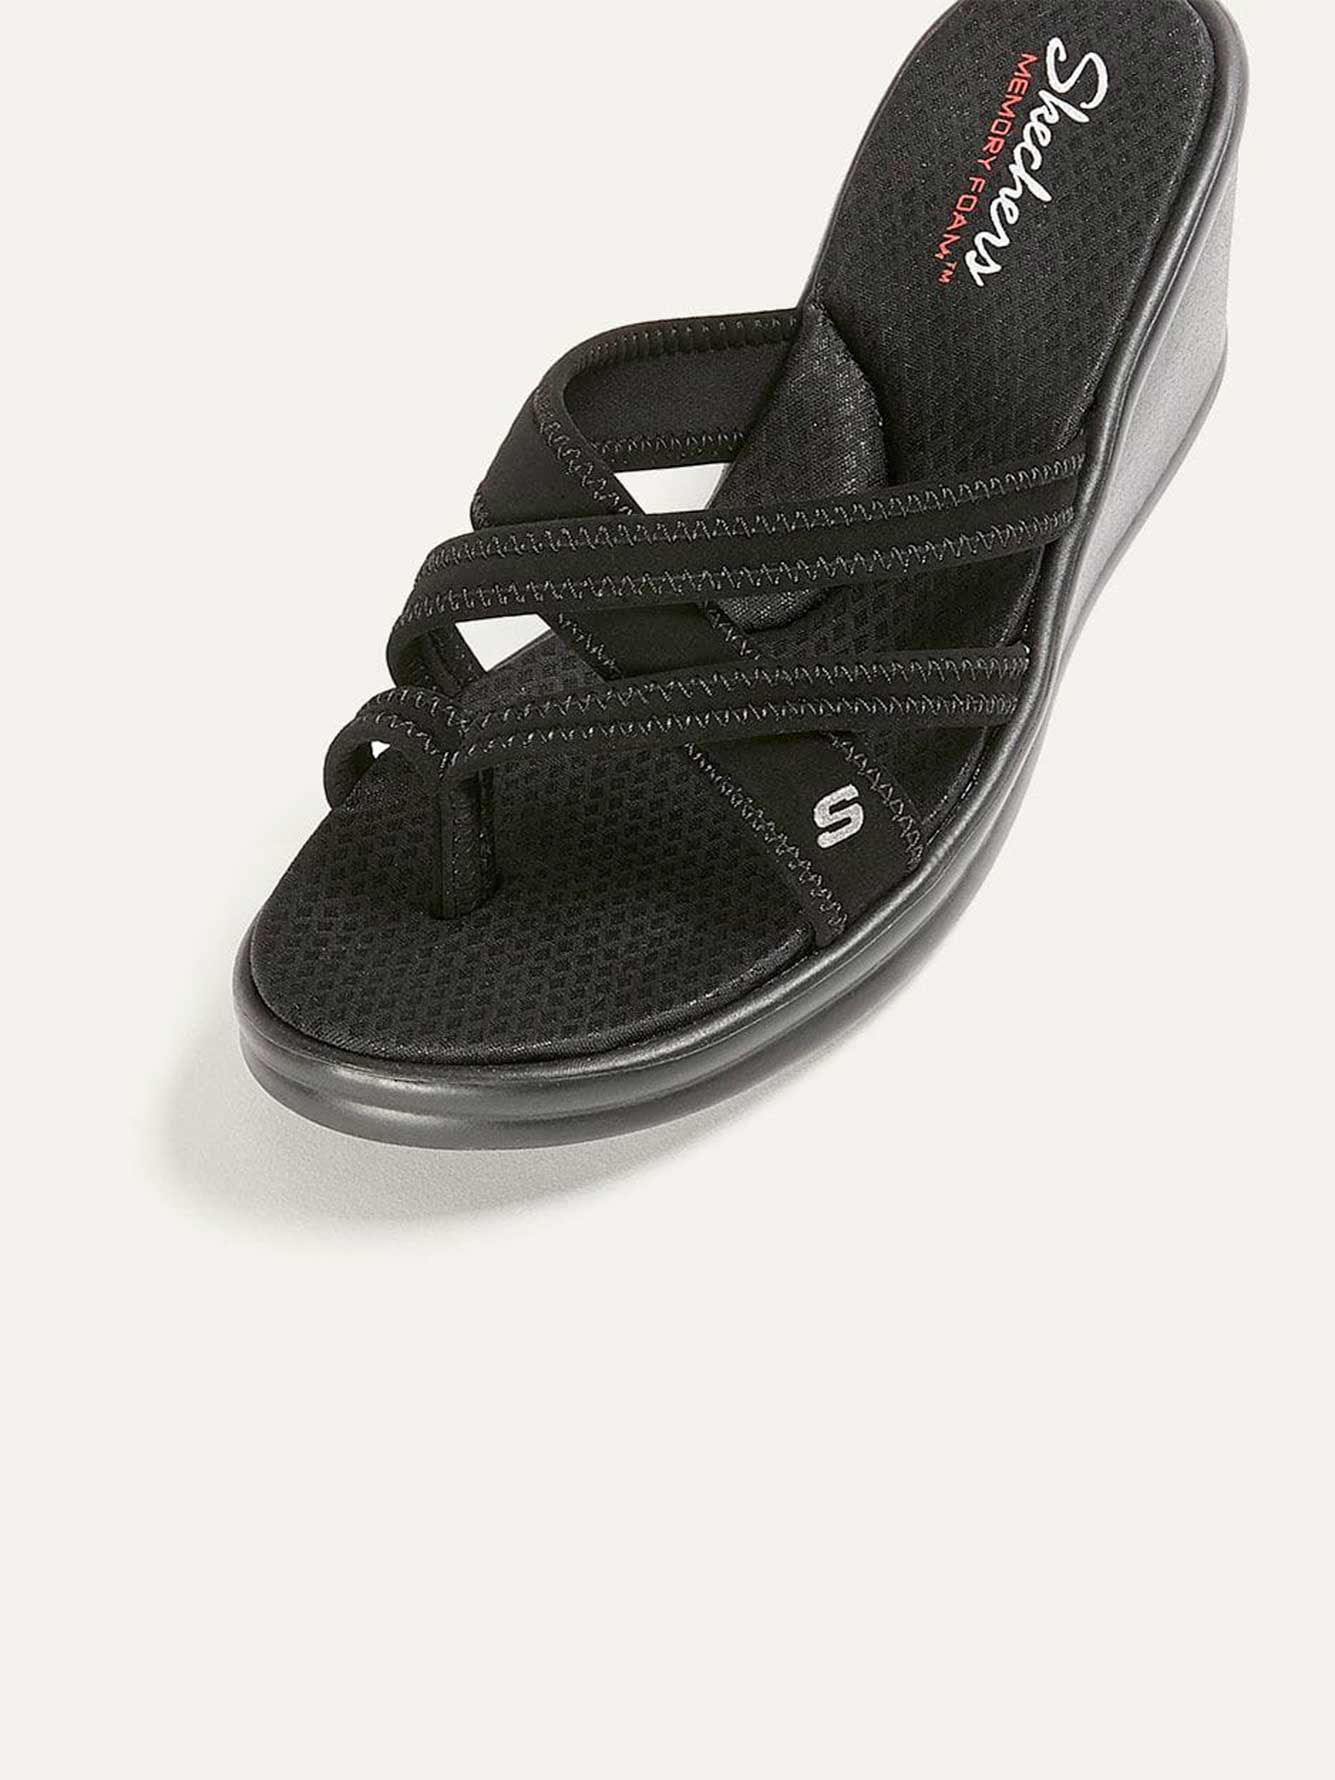 Skechers Rumblers, Young at Heart - Wide Width Sandals